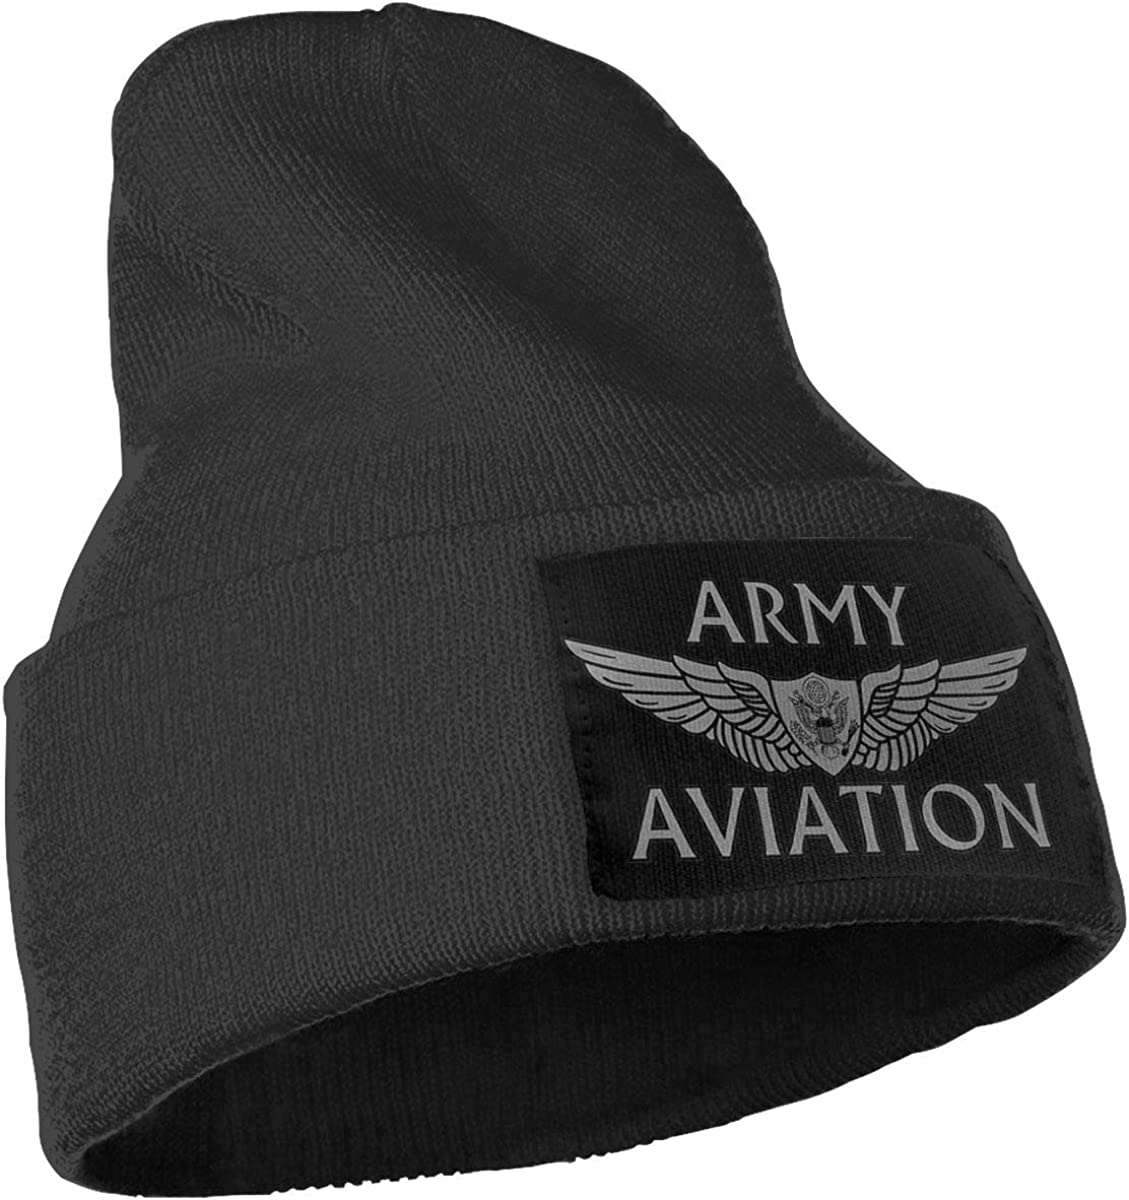 Feeke Mens/&Womens US Army Aviation with Aircrew Wing Beanie Cap Thick,Soft,Warm Slouchy Knit Hat Winter Soft Ski Cap